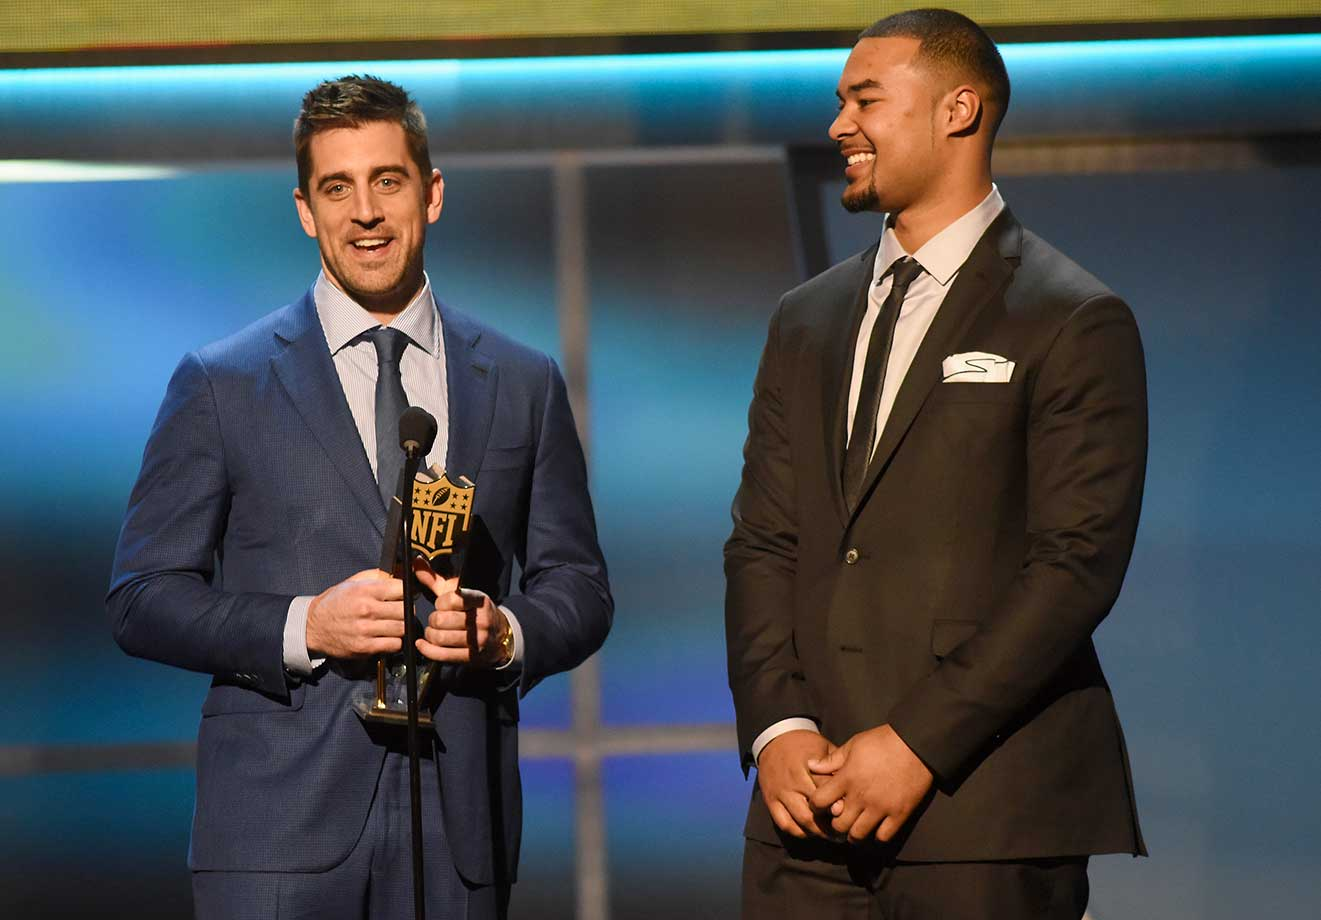 The Hail Mary duo of Aaron and Richard Rodgers accept the Play of the Year award in San Francisco.